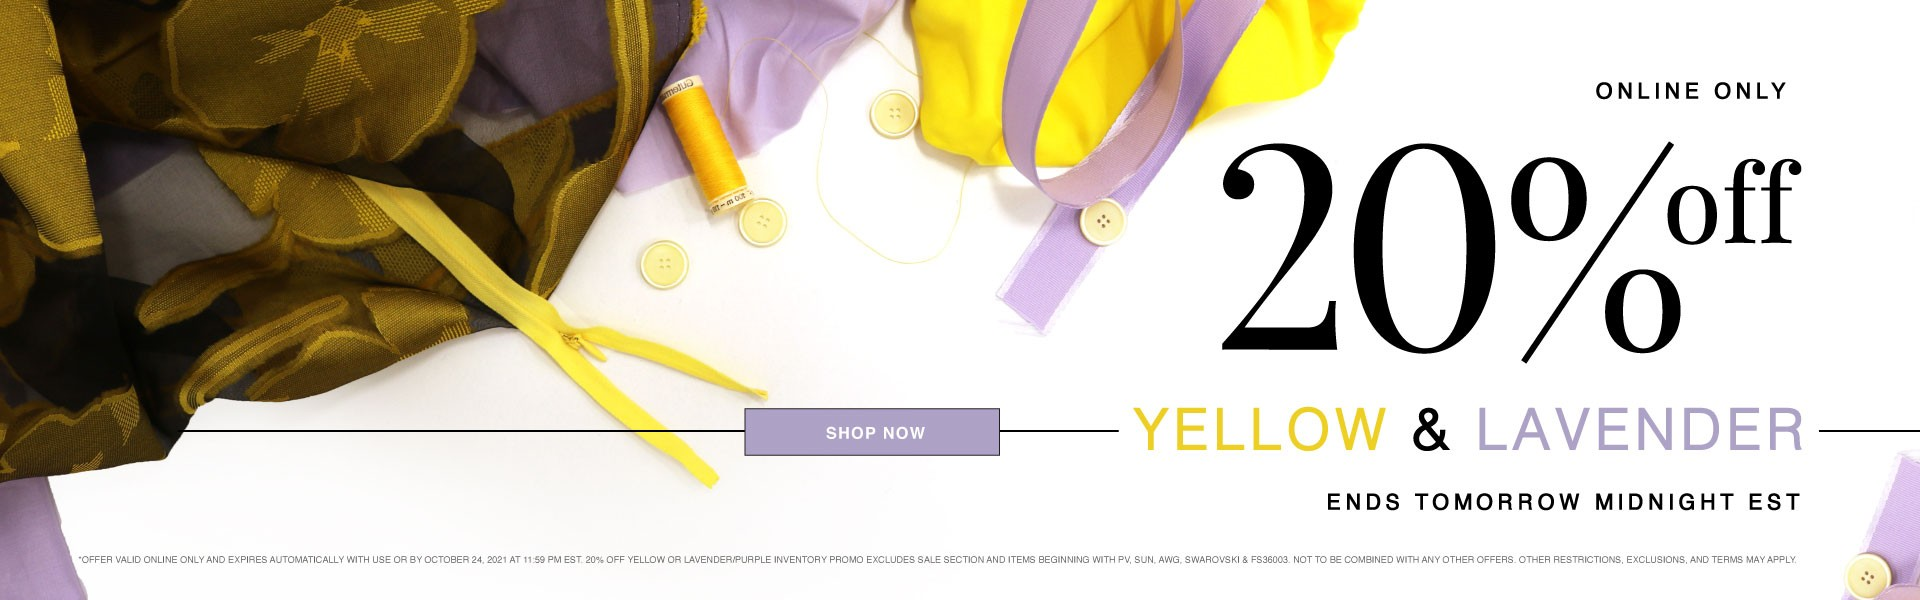 20% Off Yellow & Lavender Fabrics, Buttons, Notions and Trims - Shop the Sale Now!